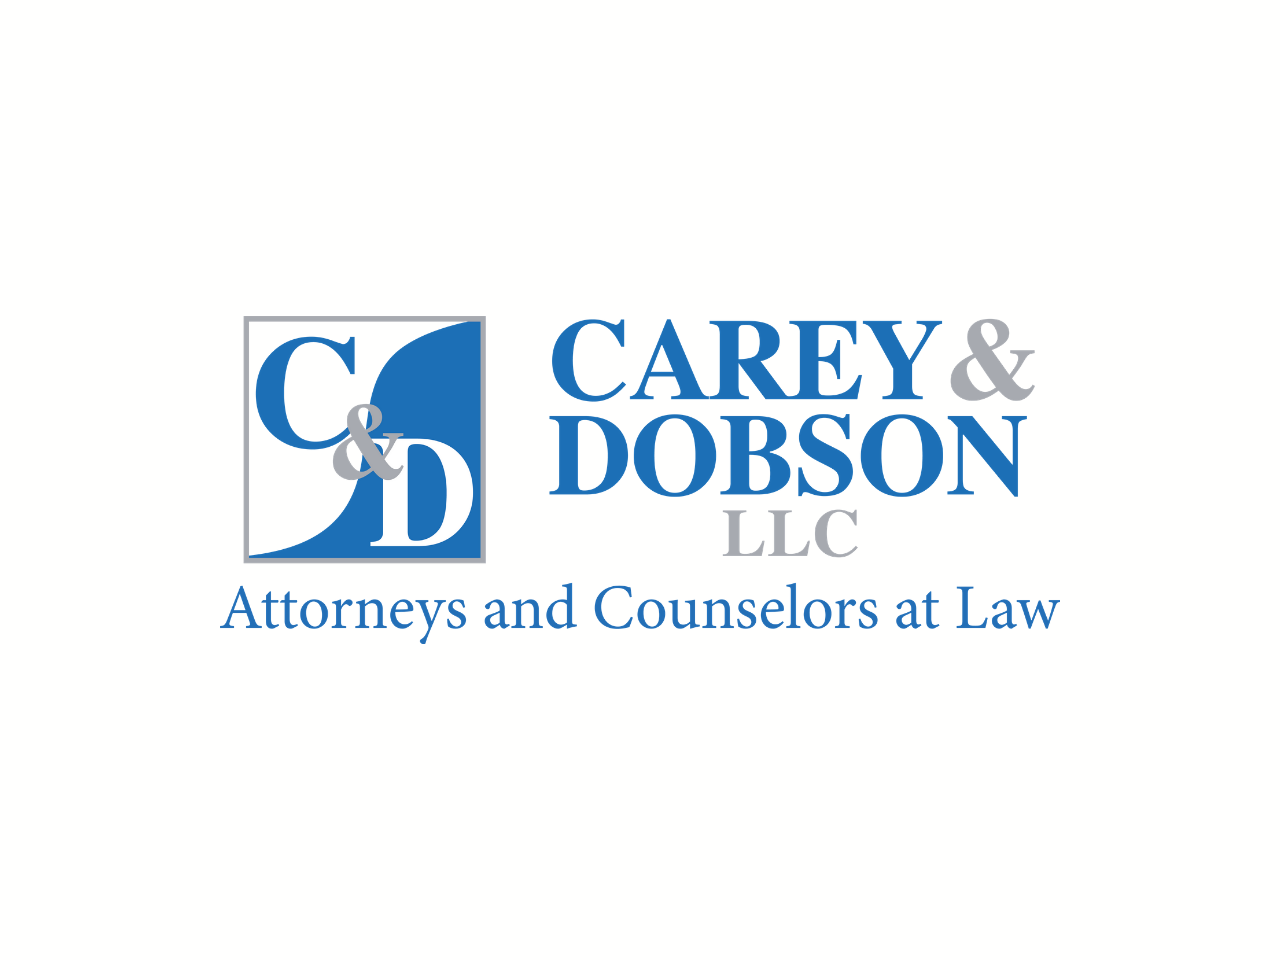 Carey & Dobson LLC